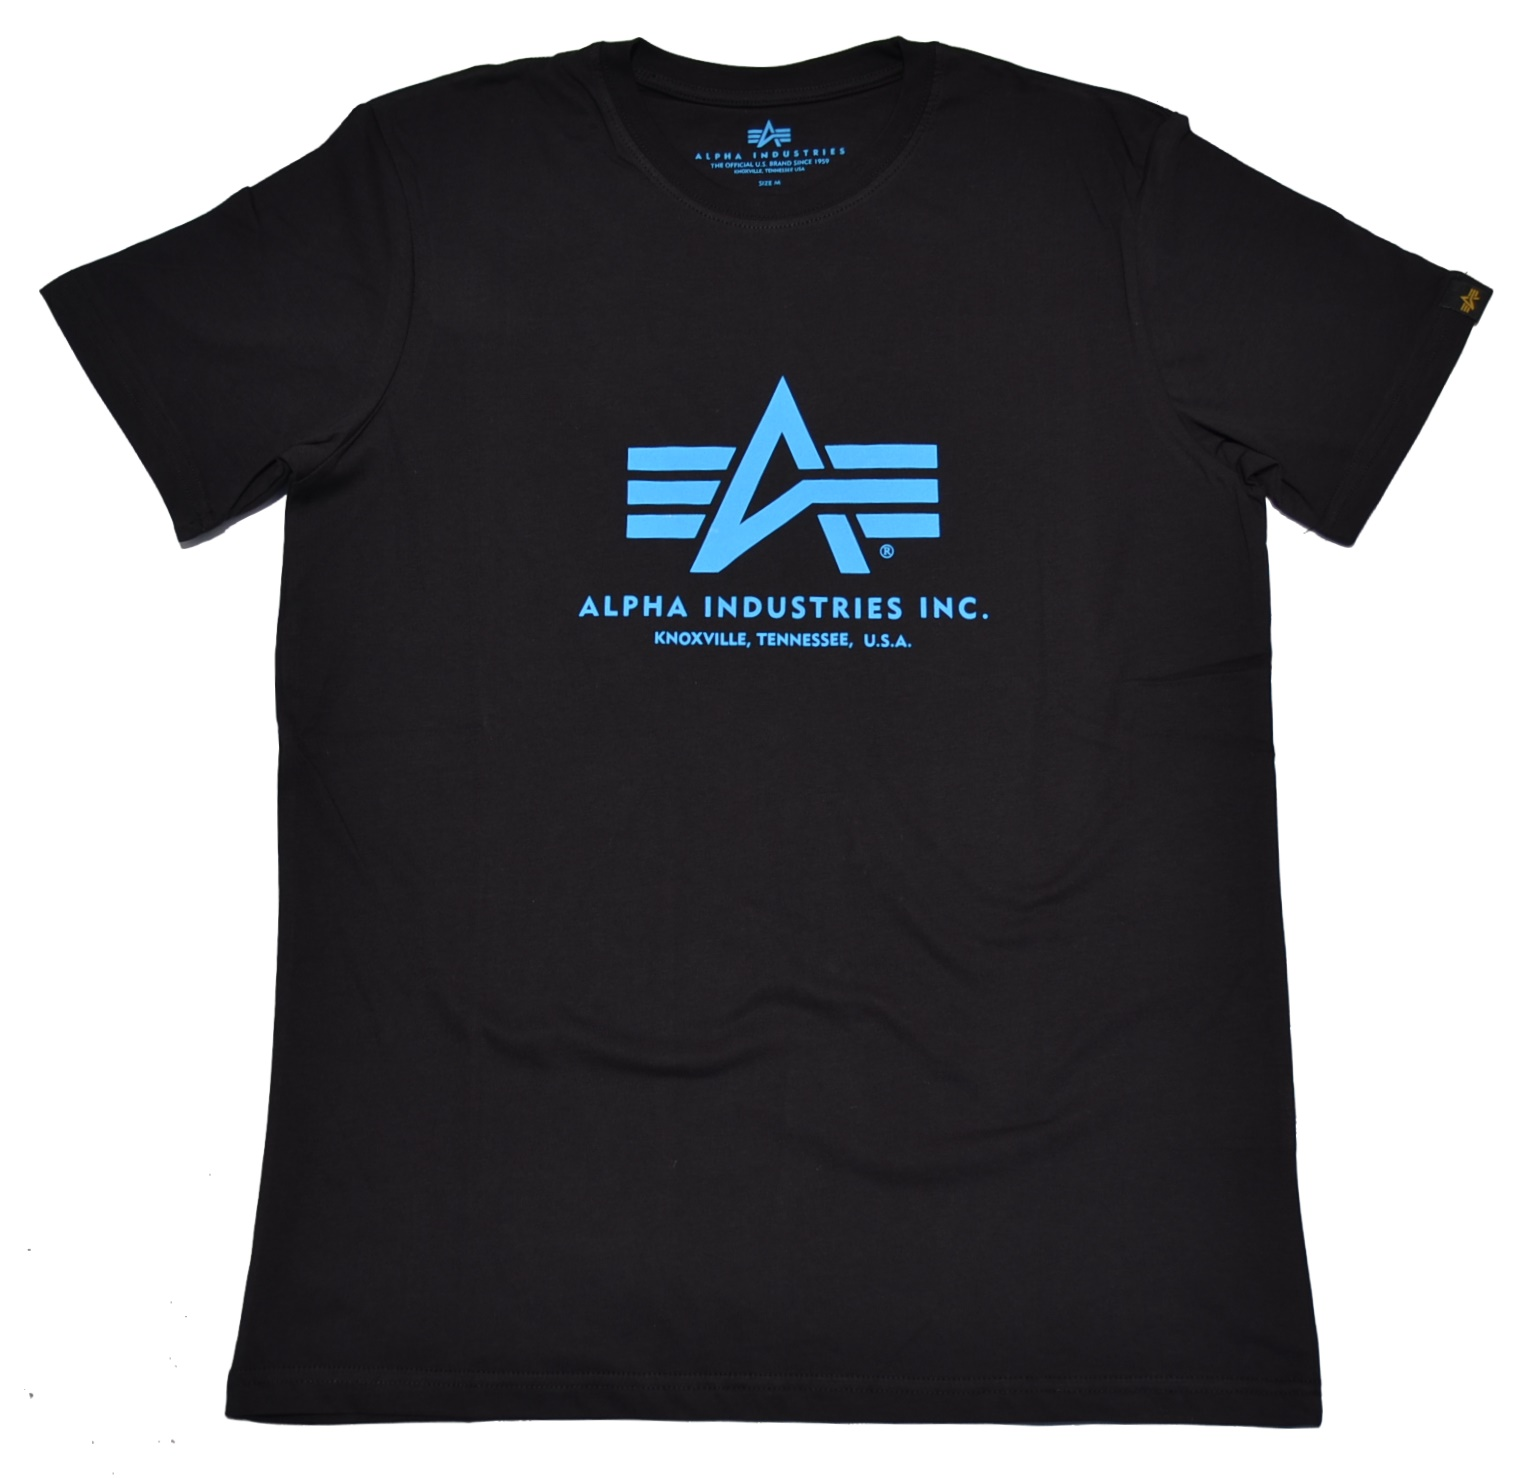 sneakers for cheap 7a2df 3d543 Alpha Industries T-Shirt 100501 schwarz mit blauem Aufdruck - Alpha  Industries bei Ostzone Shop - www.ostzoneshirts.de